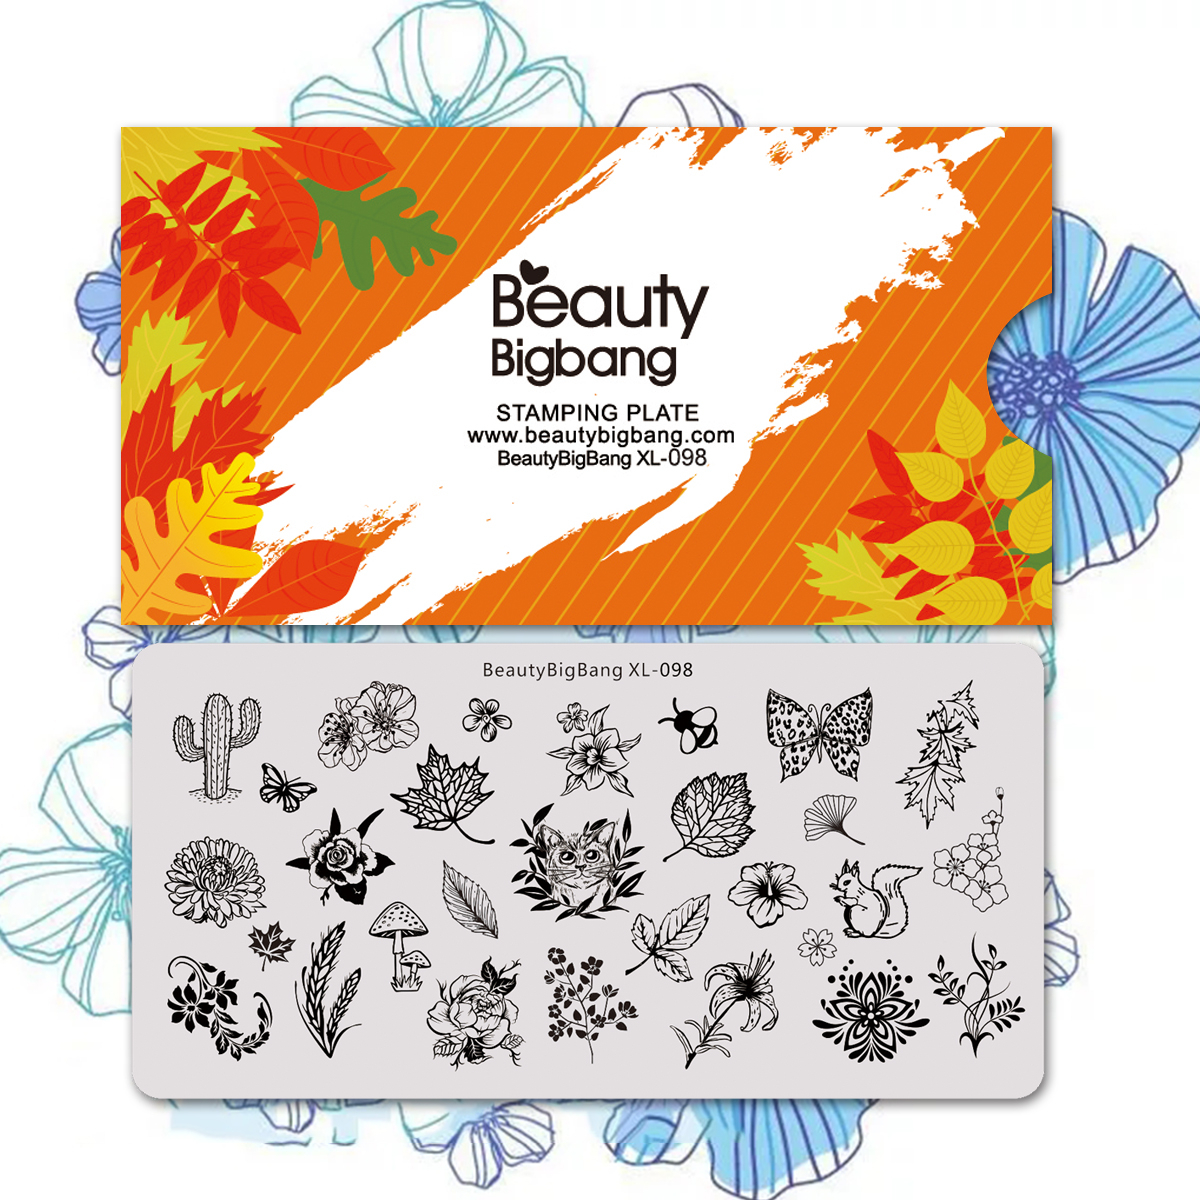 Beautybigbang Nail Stamping Plates For Nails Art Cat Butterfly Flower Leaves Template Nail Accessories Stencil Mold XL-098